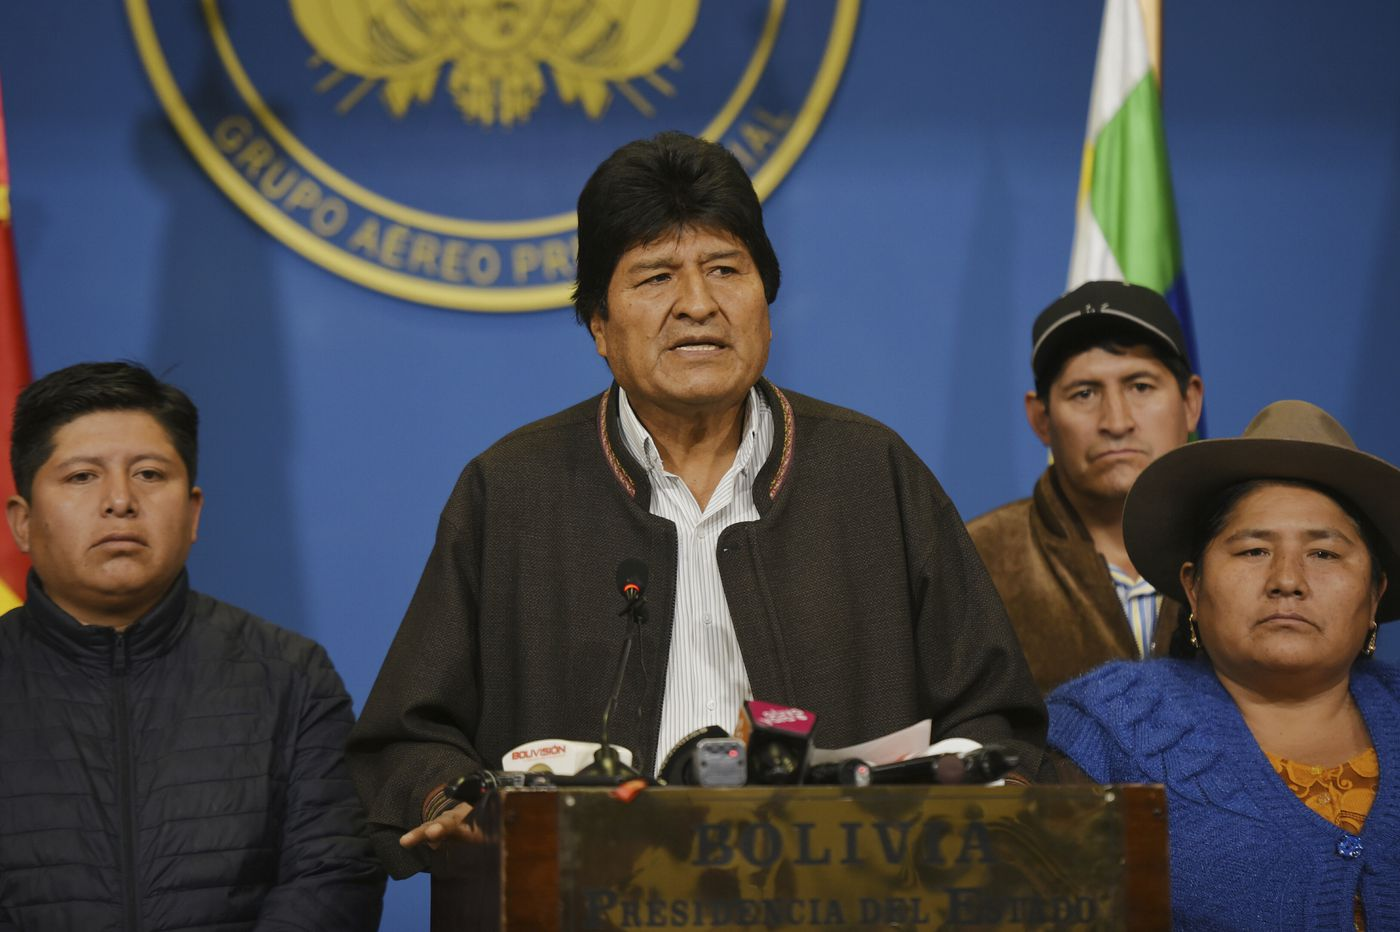 Bolivia's Morales resigns amid scathing election report, rising protests